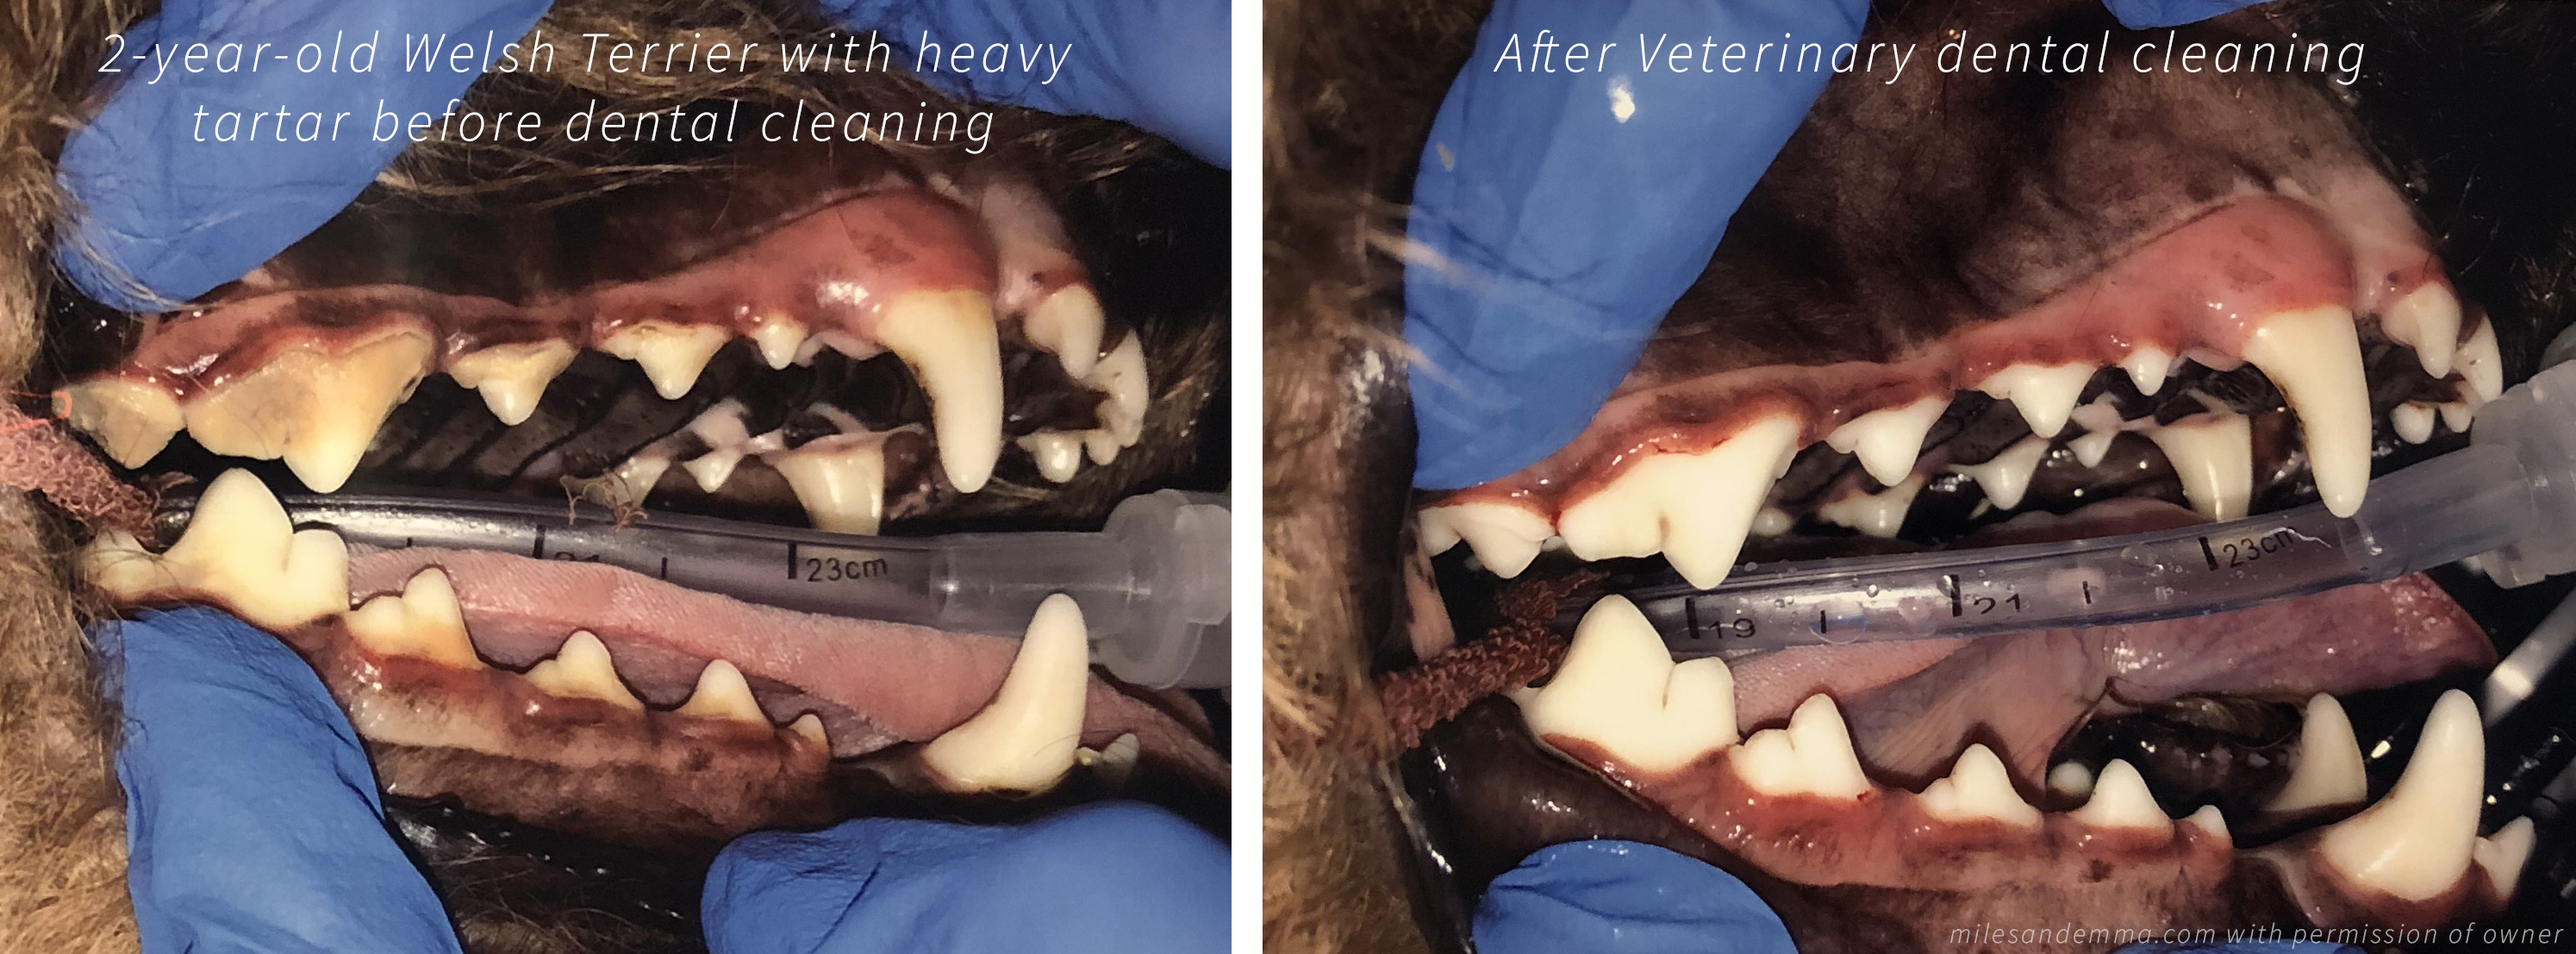 Does my dog need a dental cleaning at the vet?